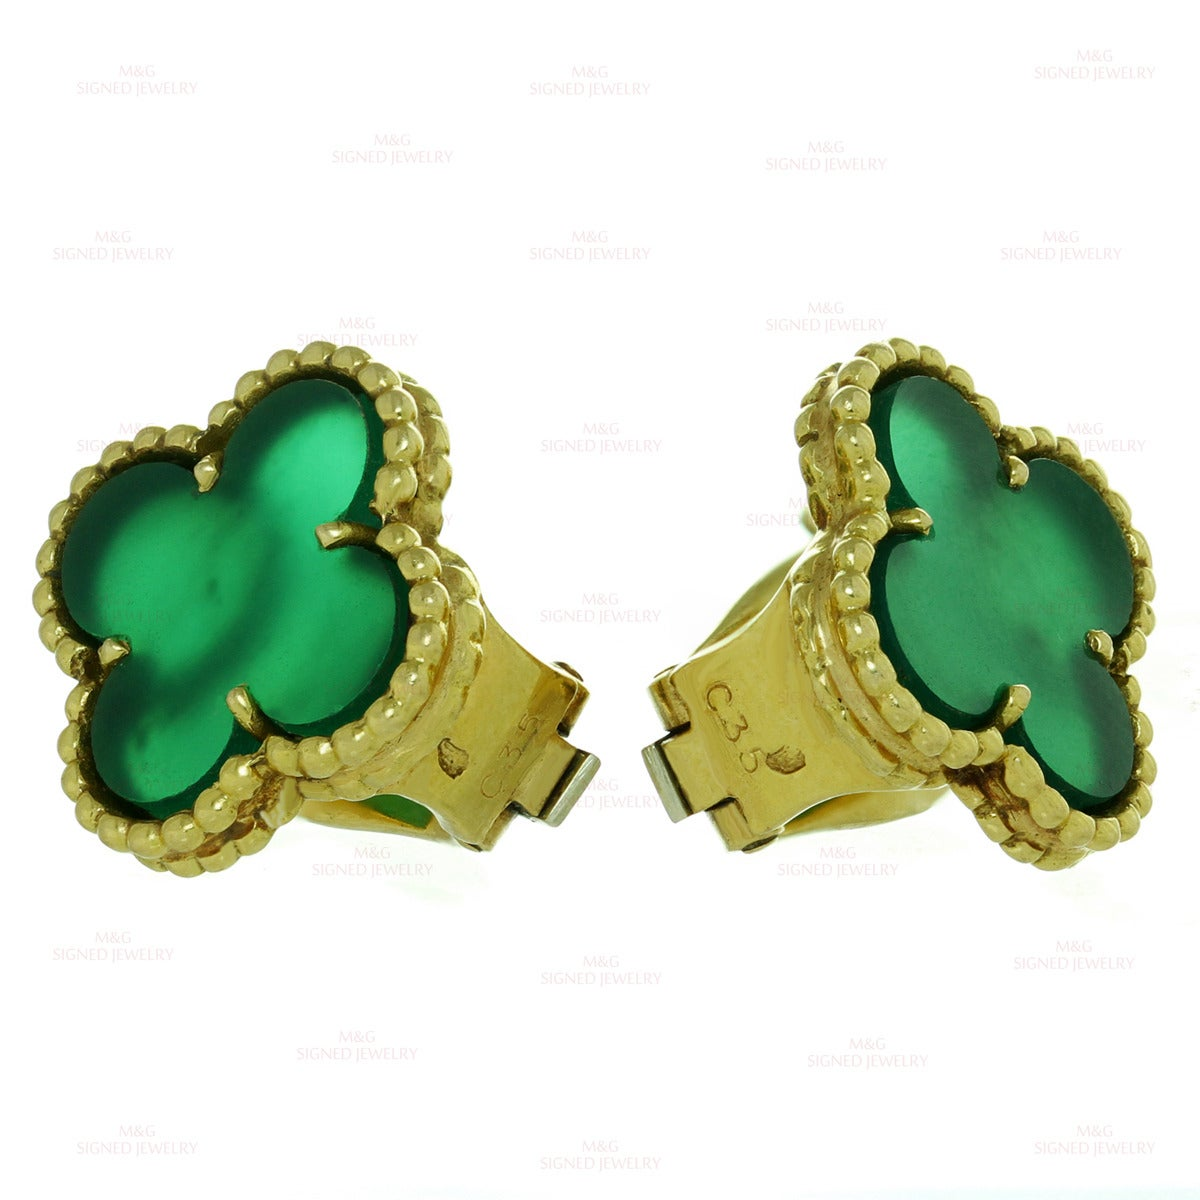 1970s Van Cleef & Arpels Alhambra Green Chalcedony Gold Earrings In Good Condition For Sale In New York, NY